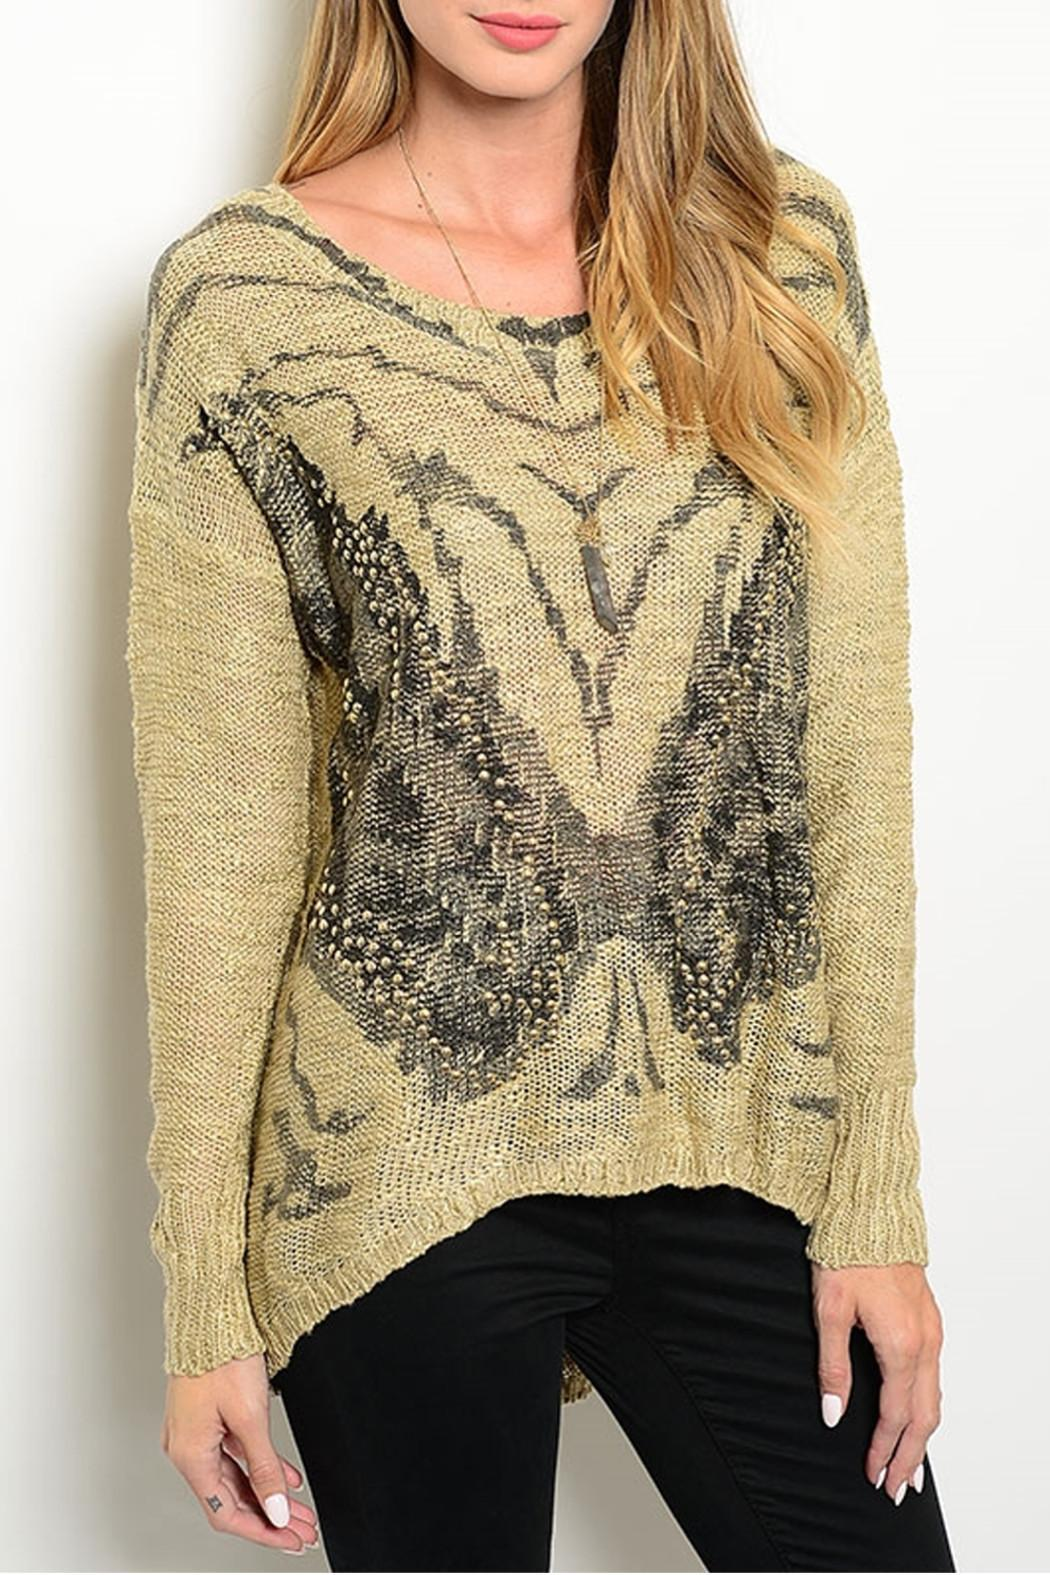 Davi & Dani Butterfly Studs Sweater - Front Cropped Image